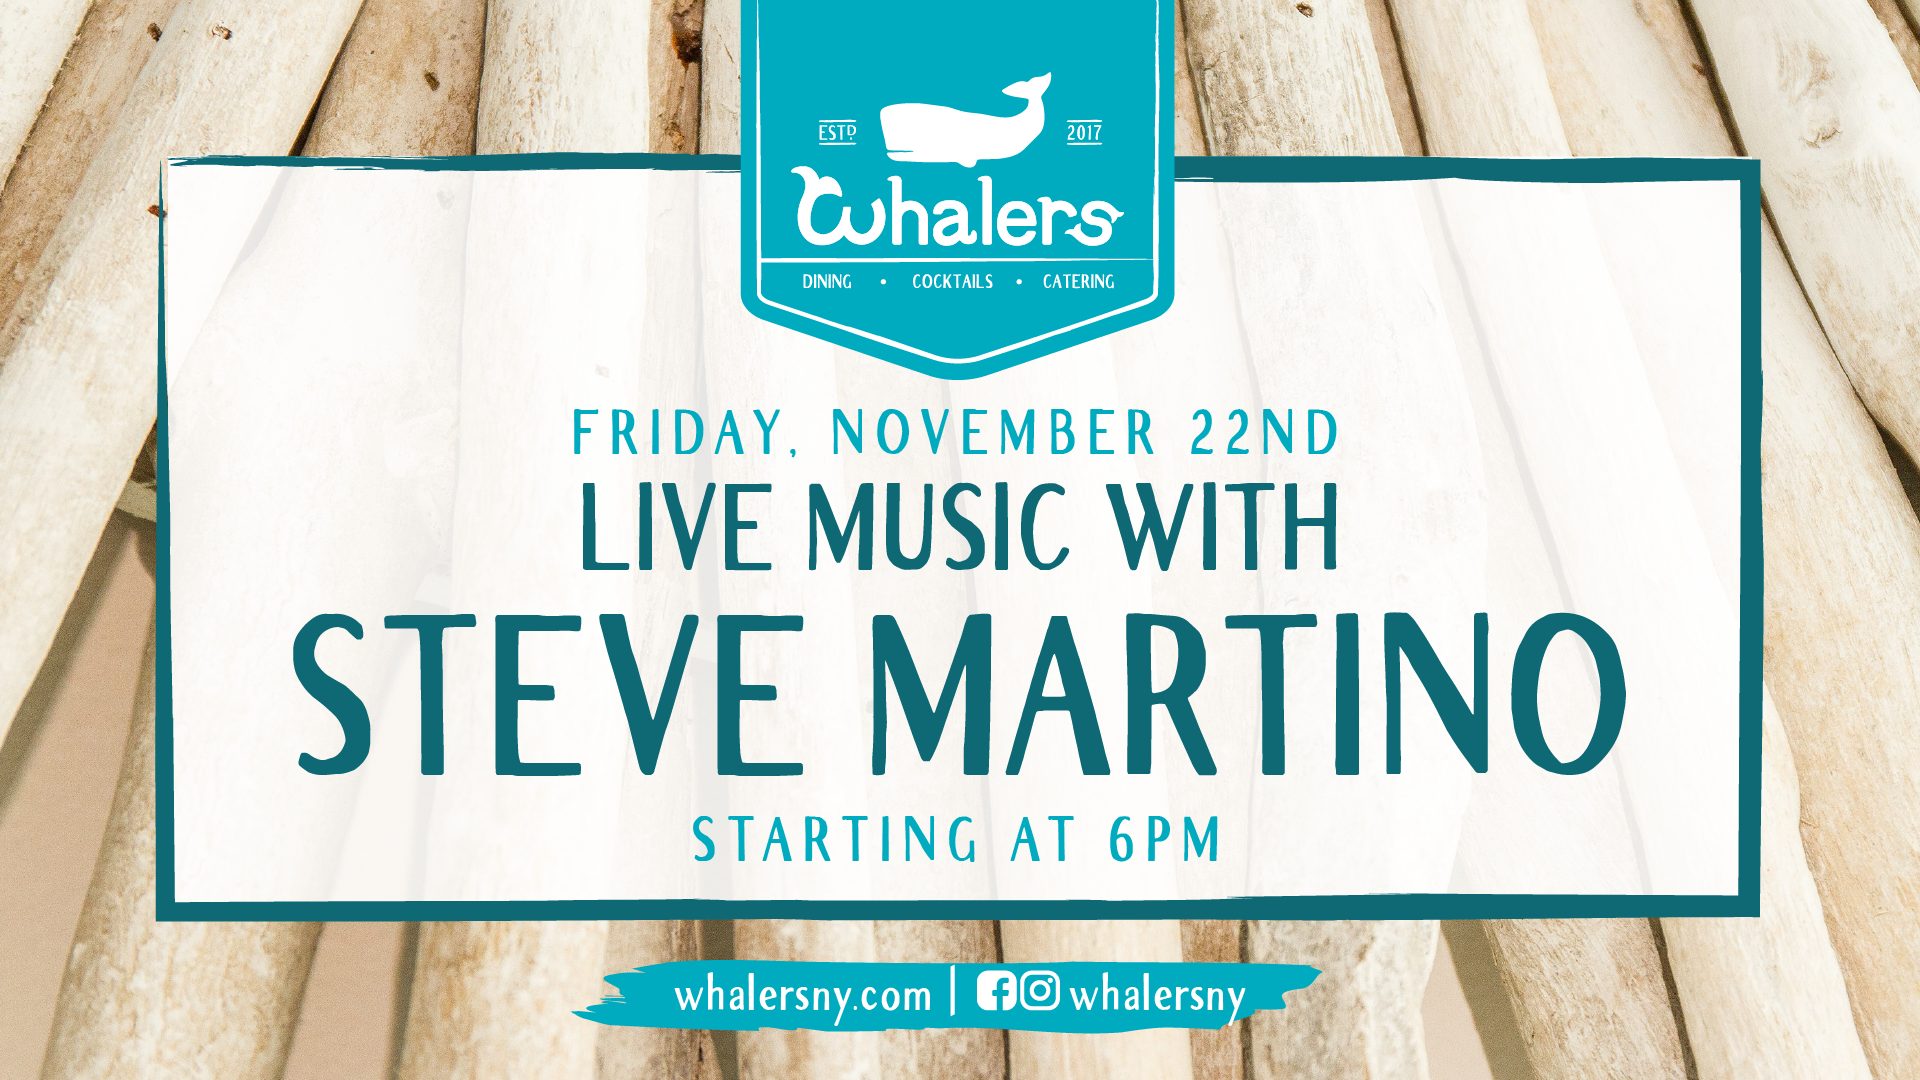 Flyer for Live Music with Steve Martino on Friday, November 22nd at 6pm.